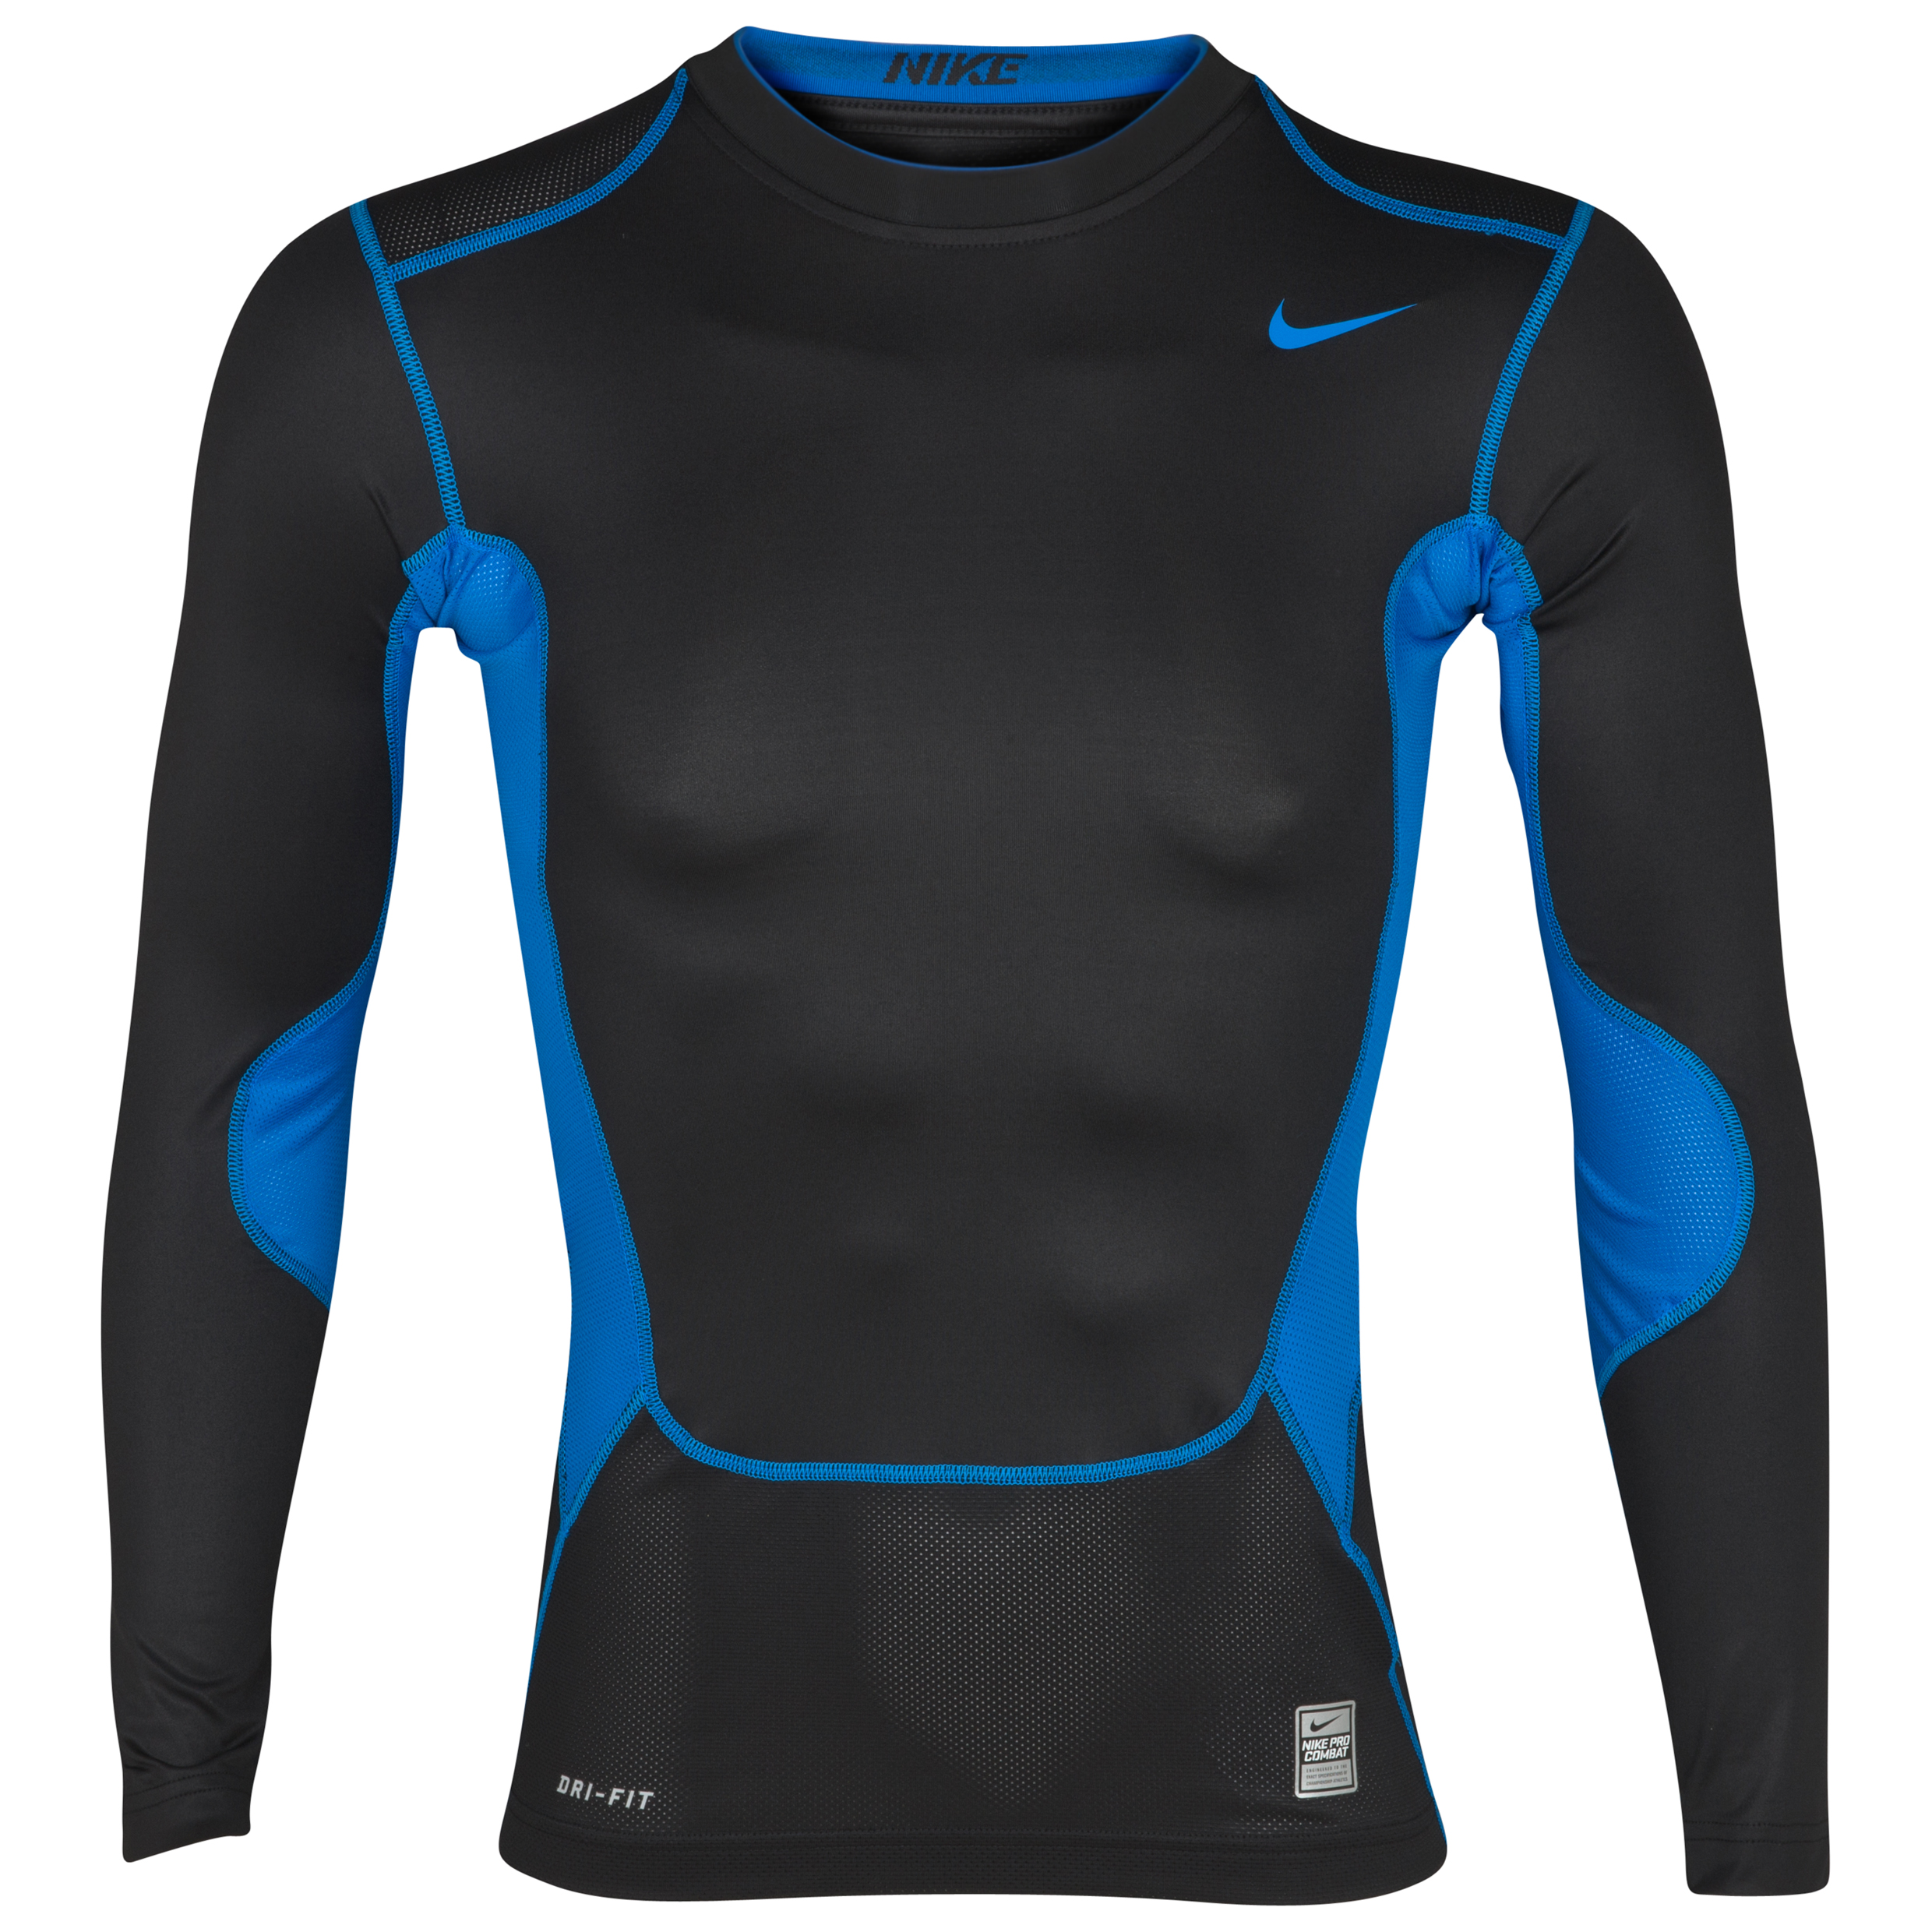 Nike Hypercool Comp Baselayer Top - Long Sleeve - Black/Photo Blue